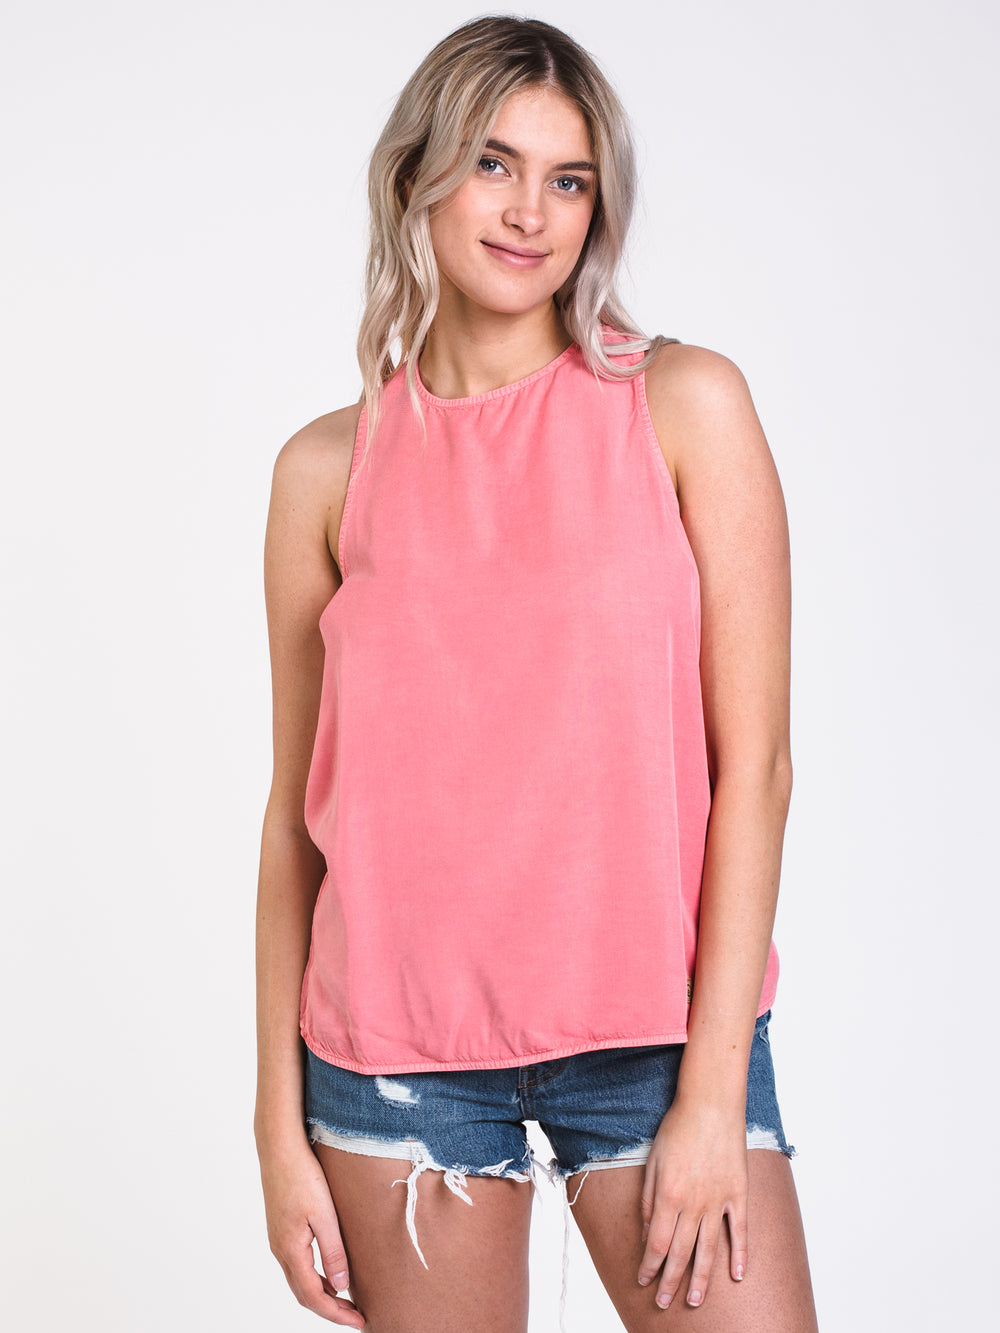 WOMENS HARBOUR TANK - PORCELAIN ROSE - CLEARANCE